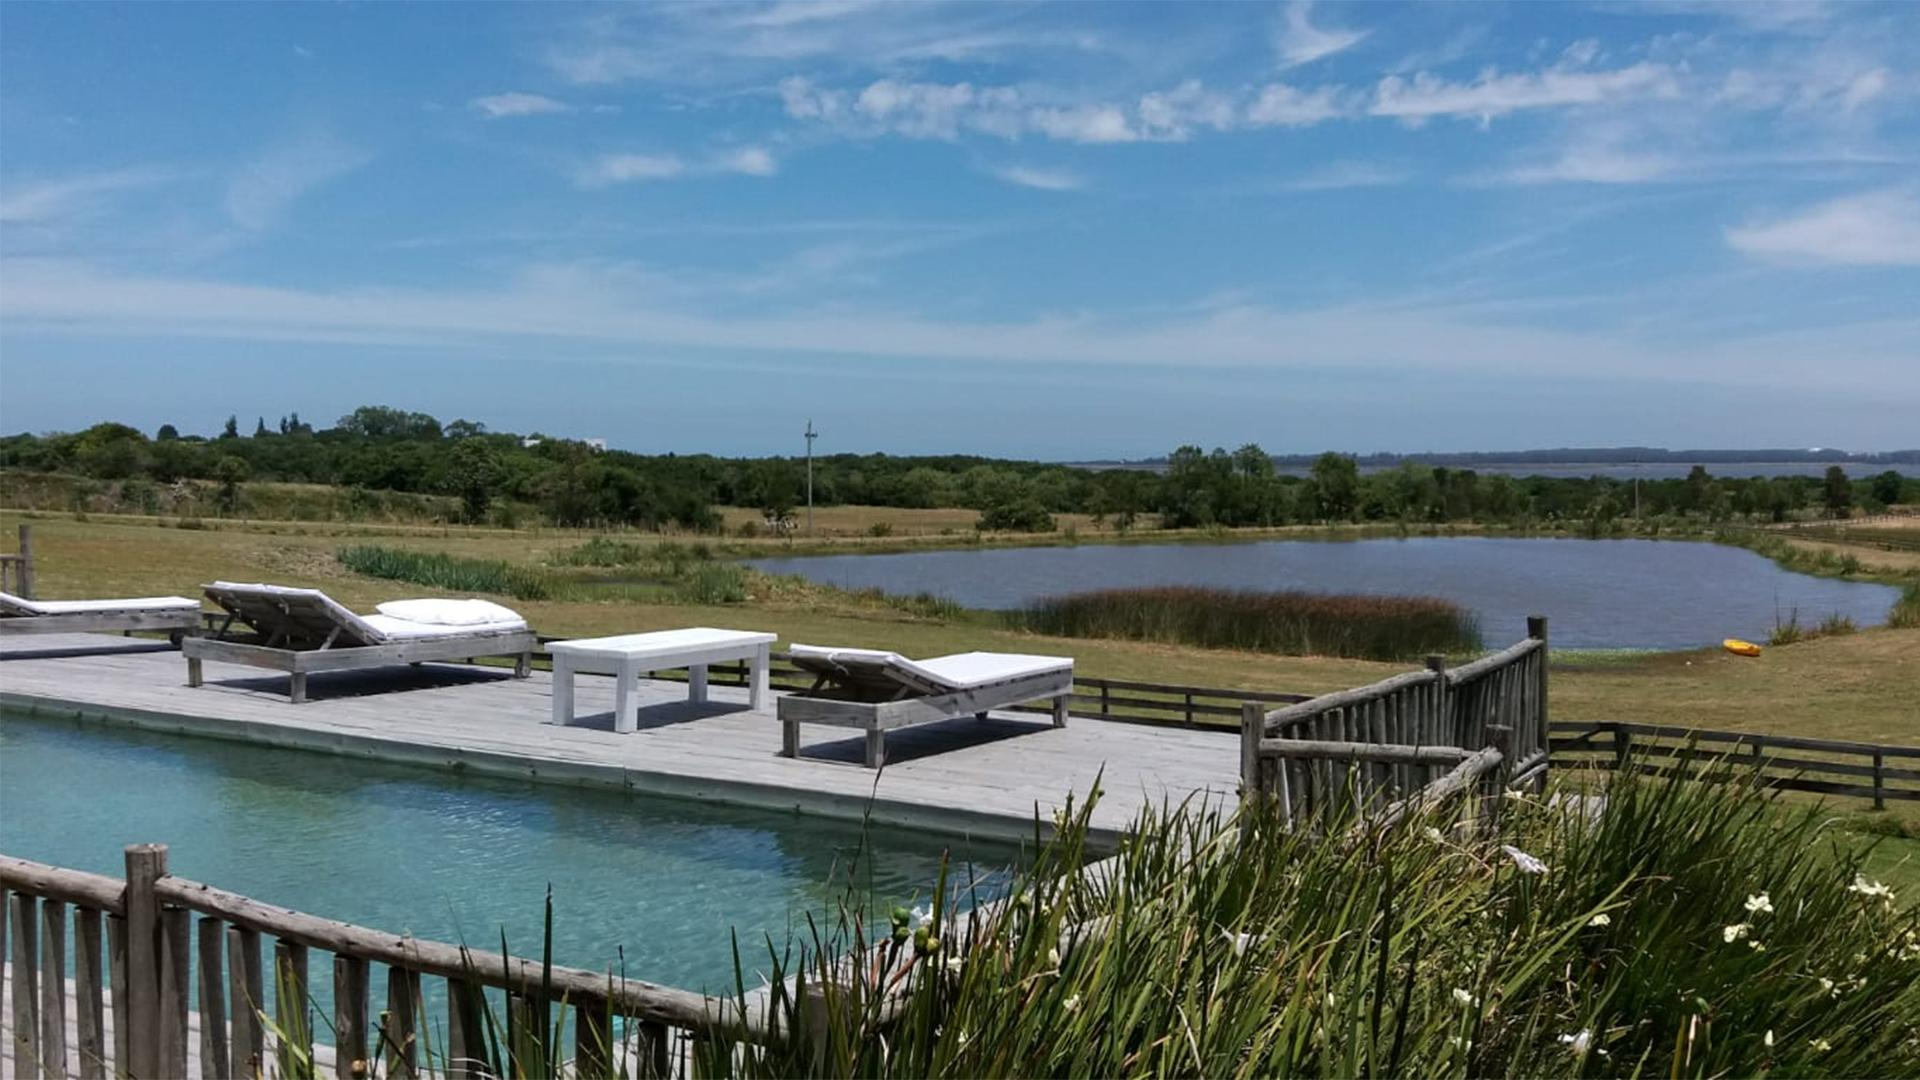 Charming Countryside Estate located in Jose Ignacio, Punta del Este, Uruguay, listed by Curiocity Villas.